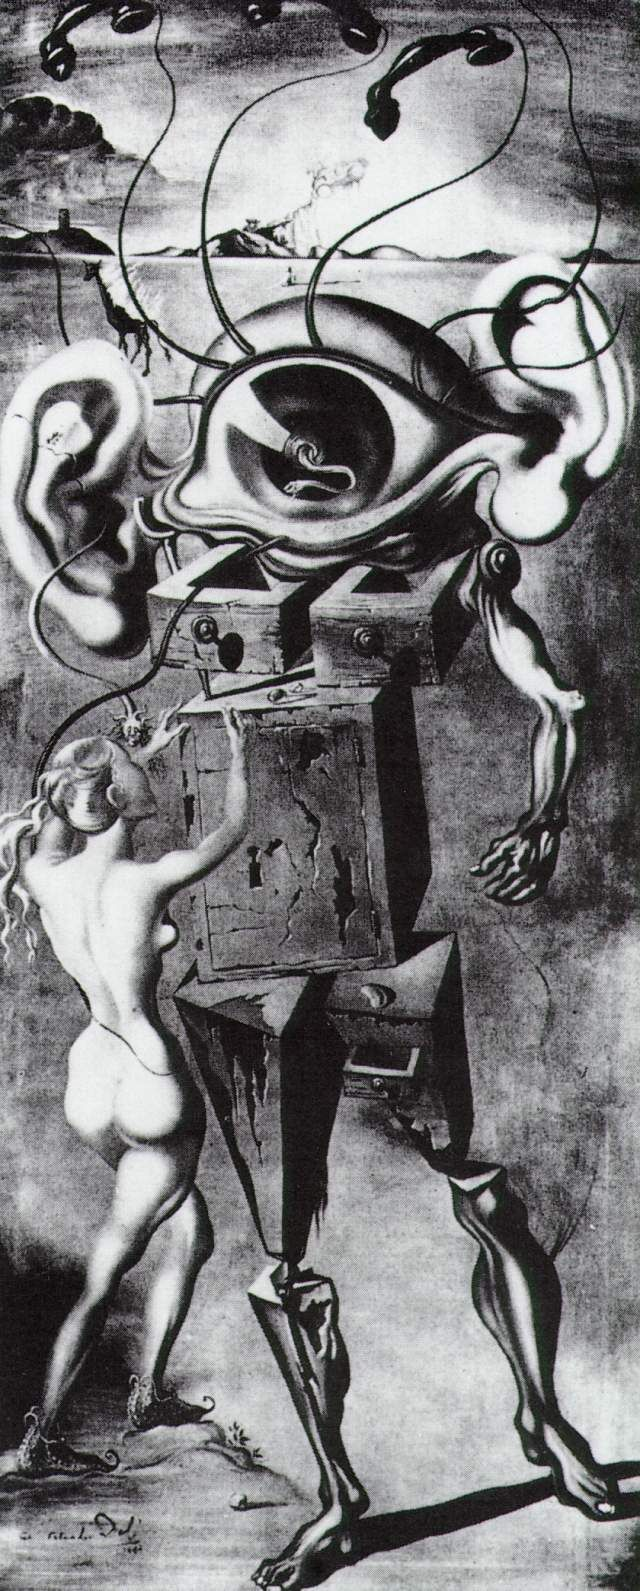 Salvador Dalí - Untitled: The Seven Arts, 1944 - Destroyed in a fire at the Ziegfeld Theatre, NYC